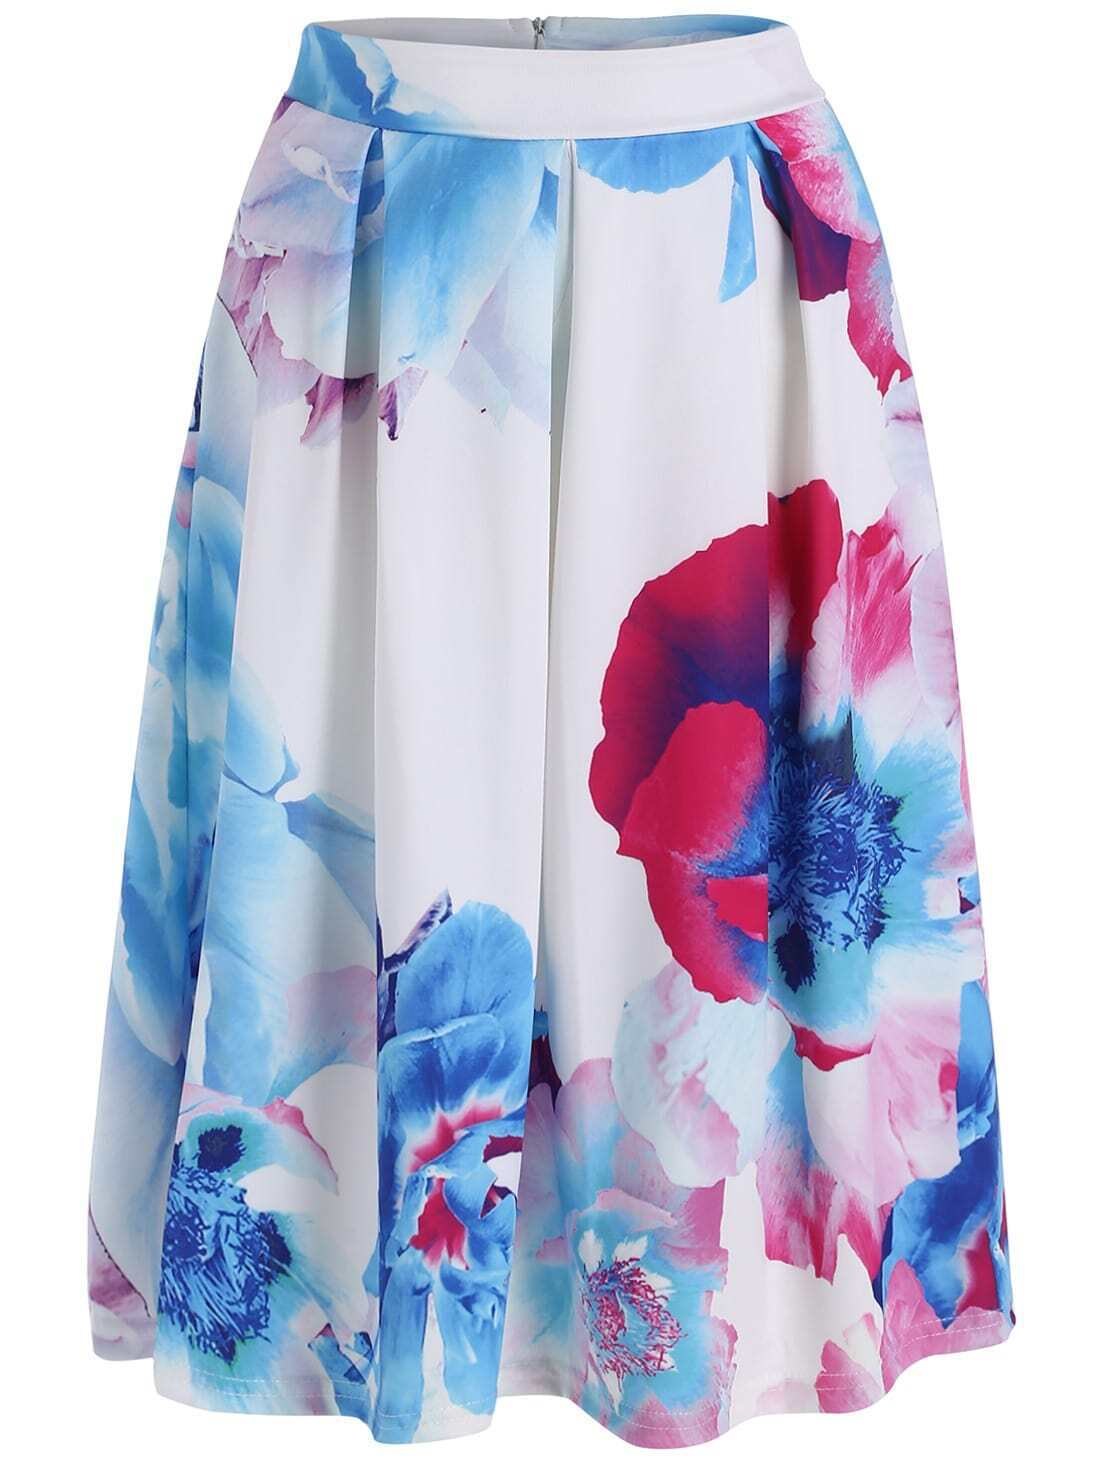 blue white spaghetti floral crop top with skirt